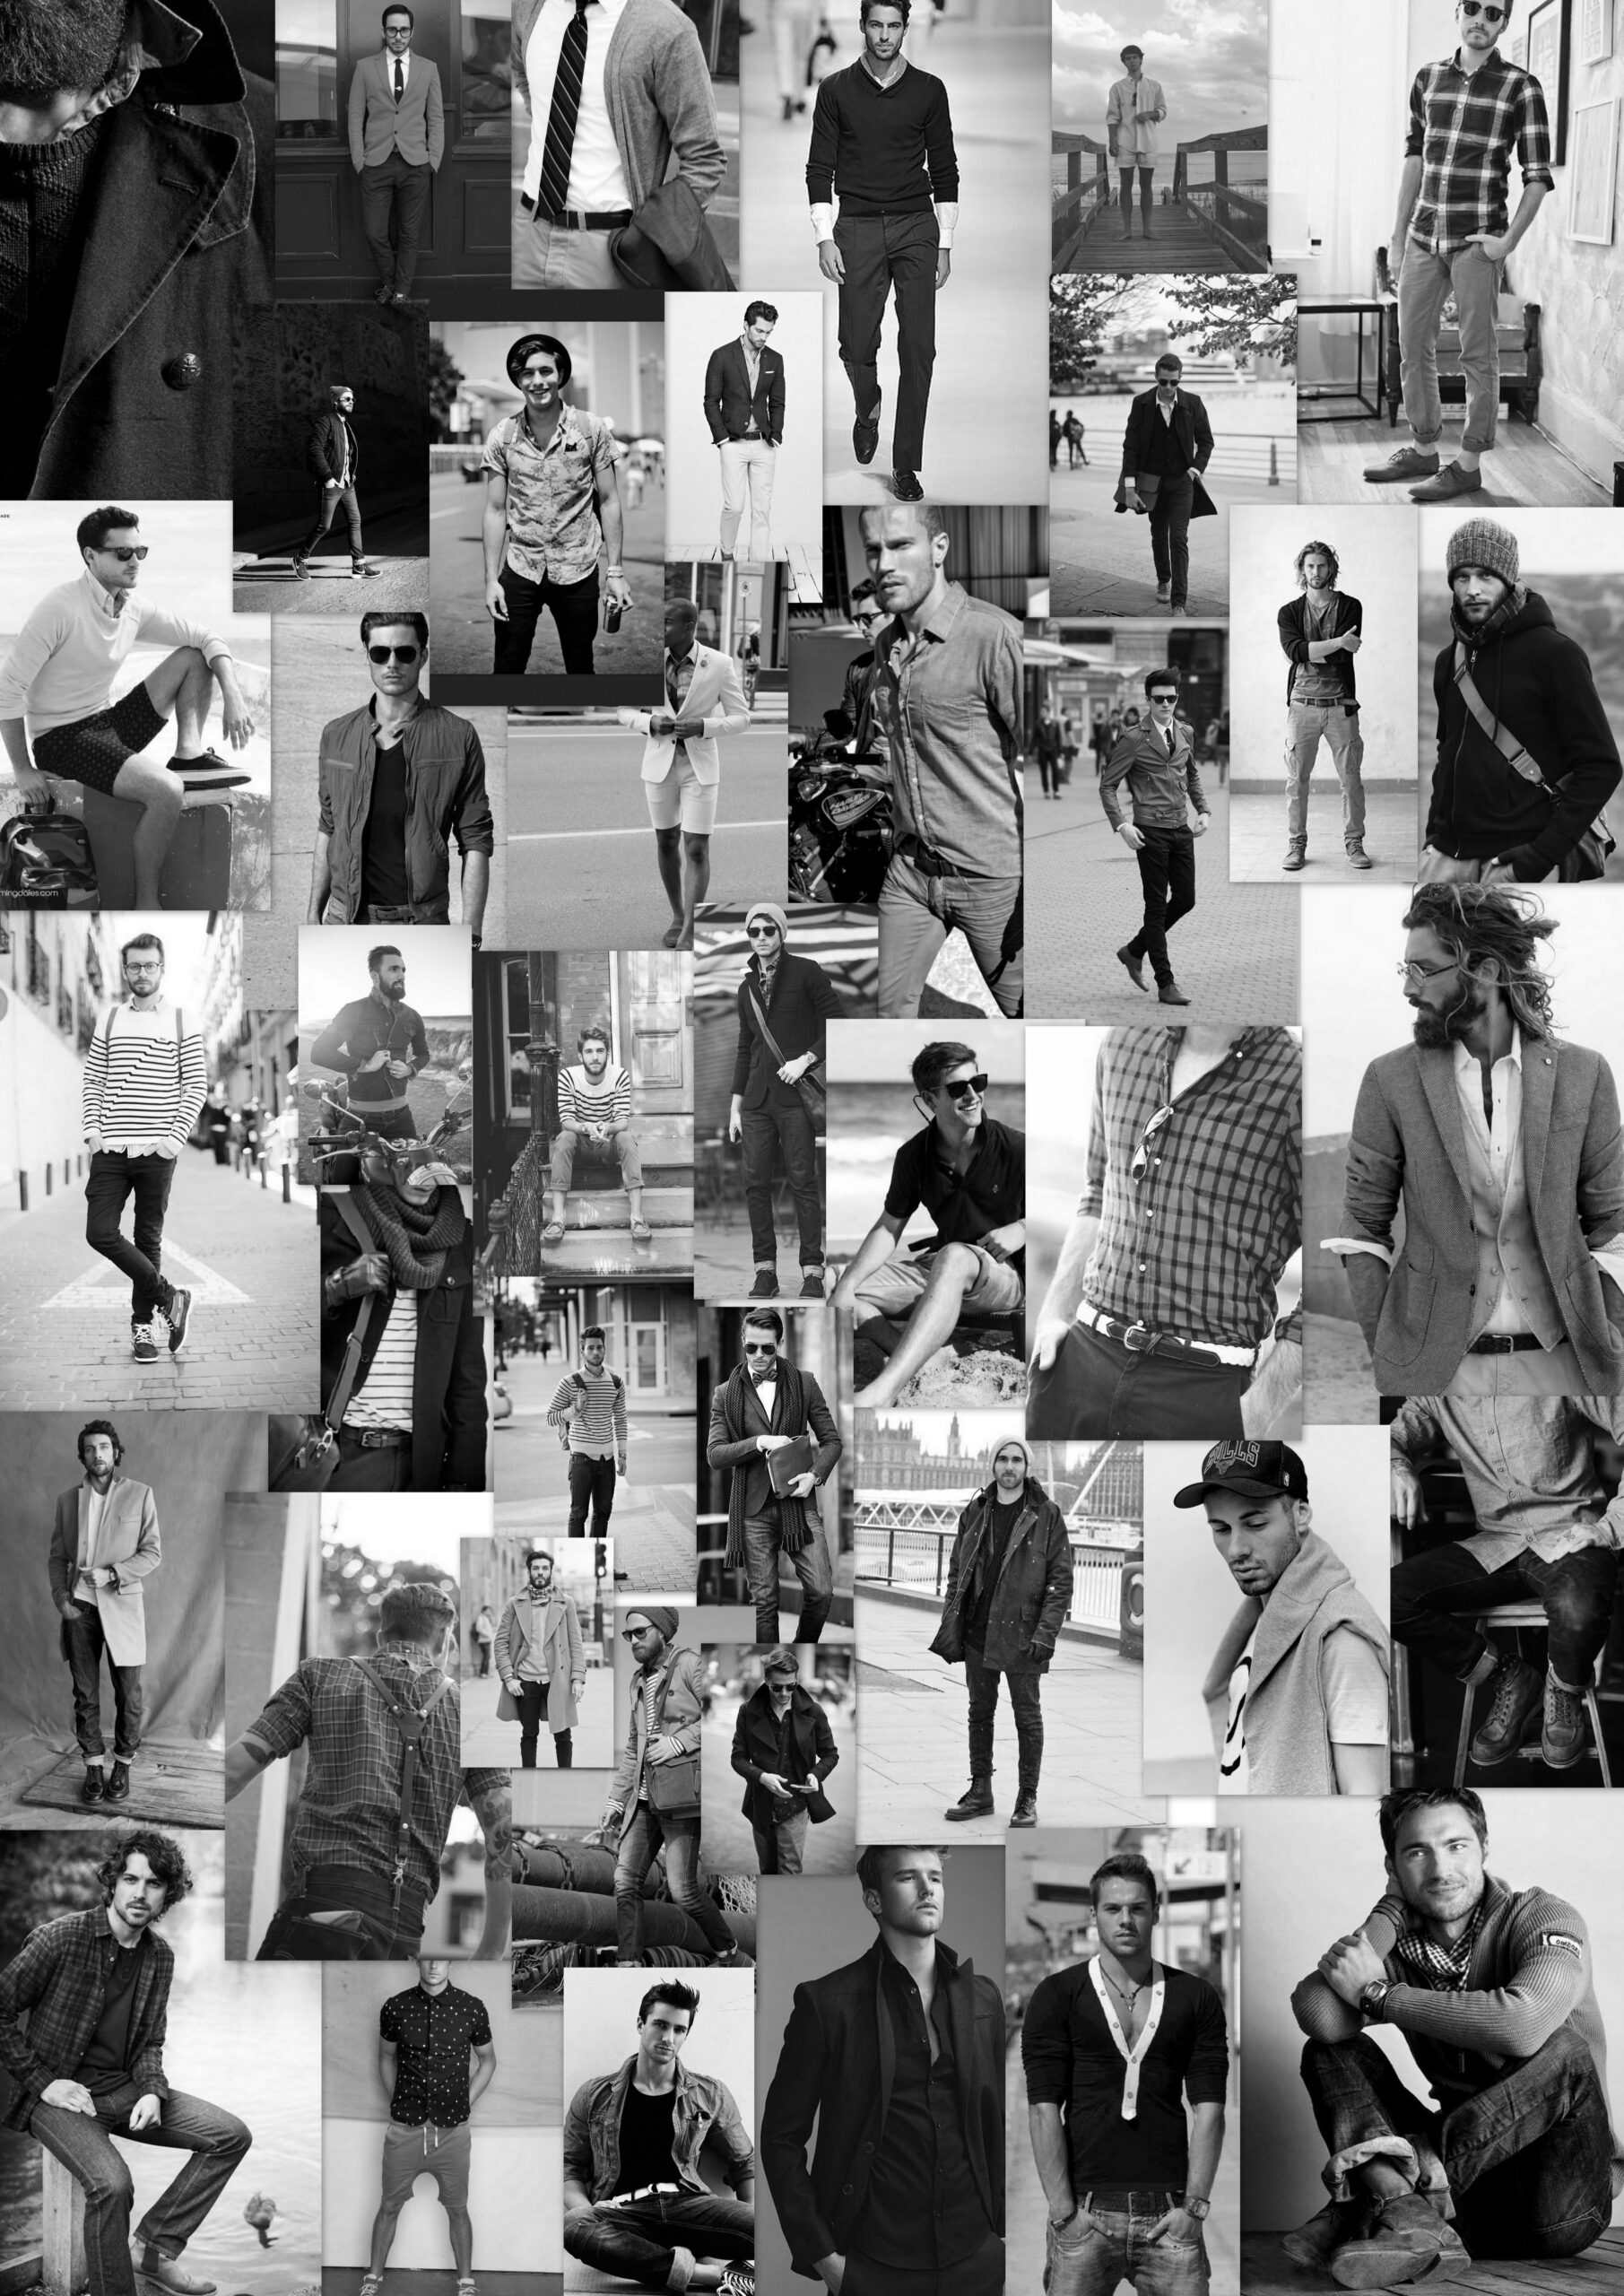 Mens clothing inspiration for DesignByU. Inexpensive sustainable Fashion inspo for private labels.